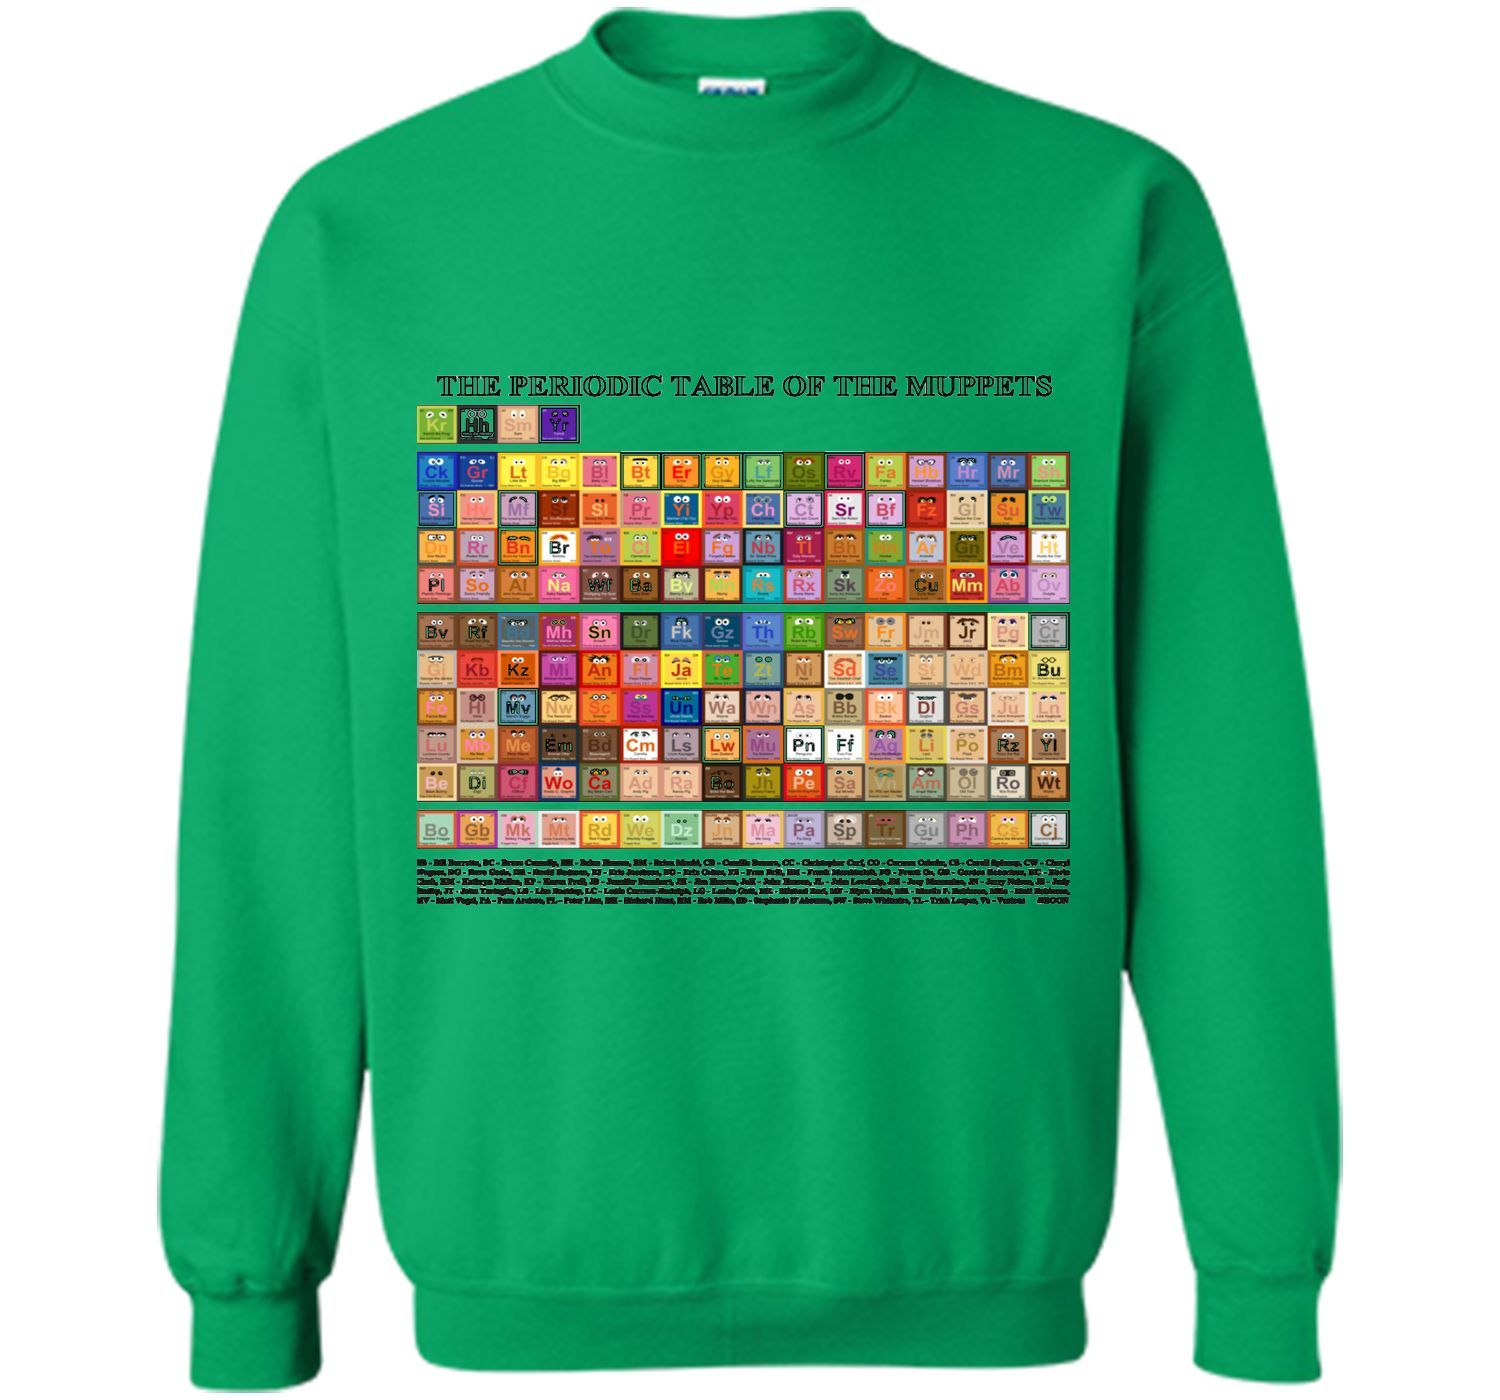 Periodic table of the muppets tshirt products pinterest periodic table of the muppets tshirt gamestrikefo Image collections